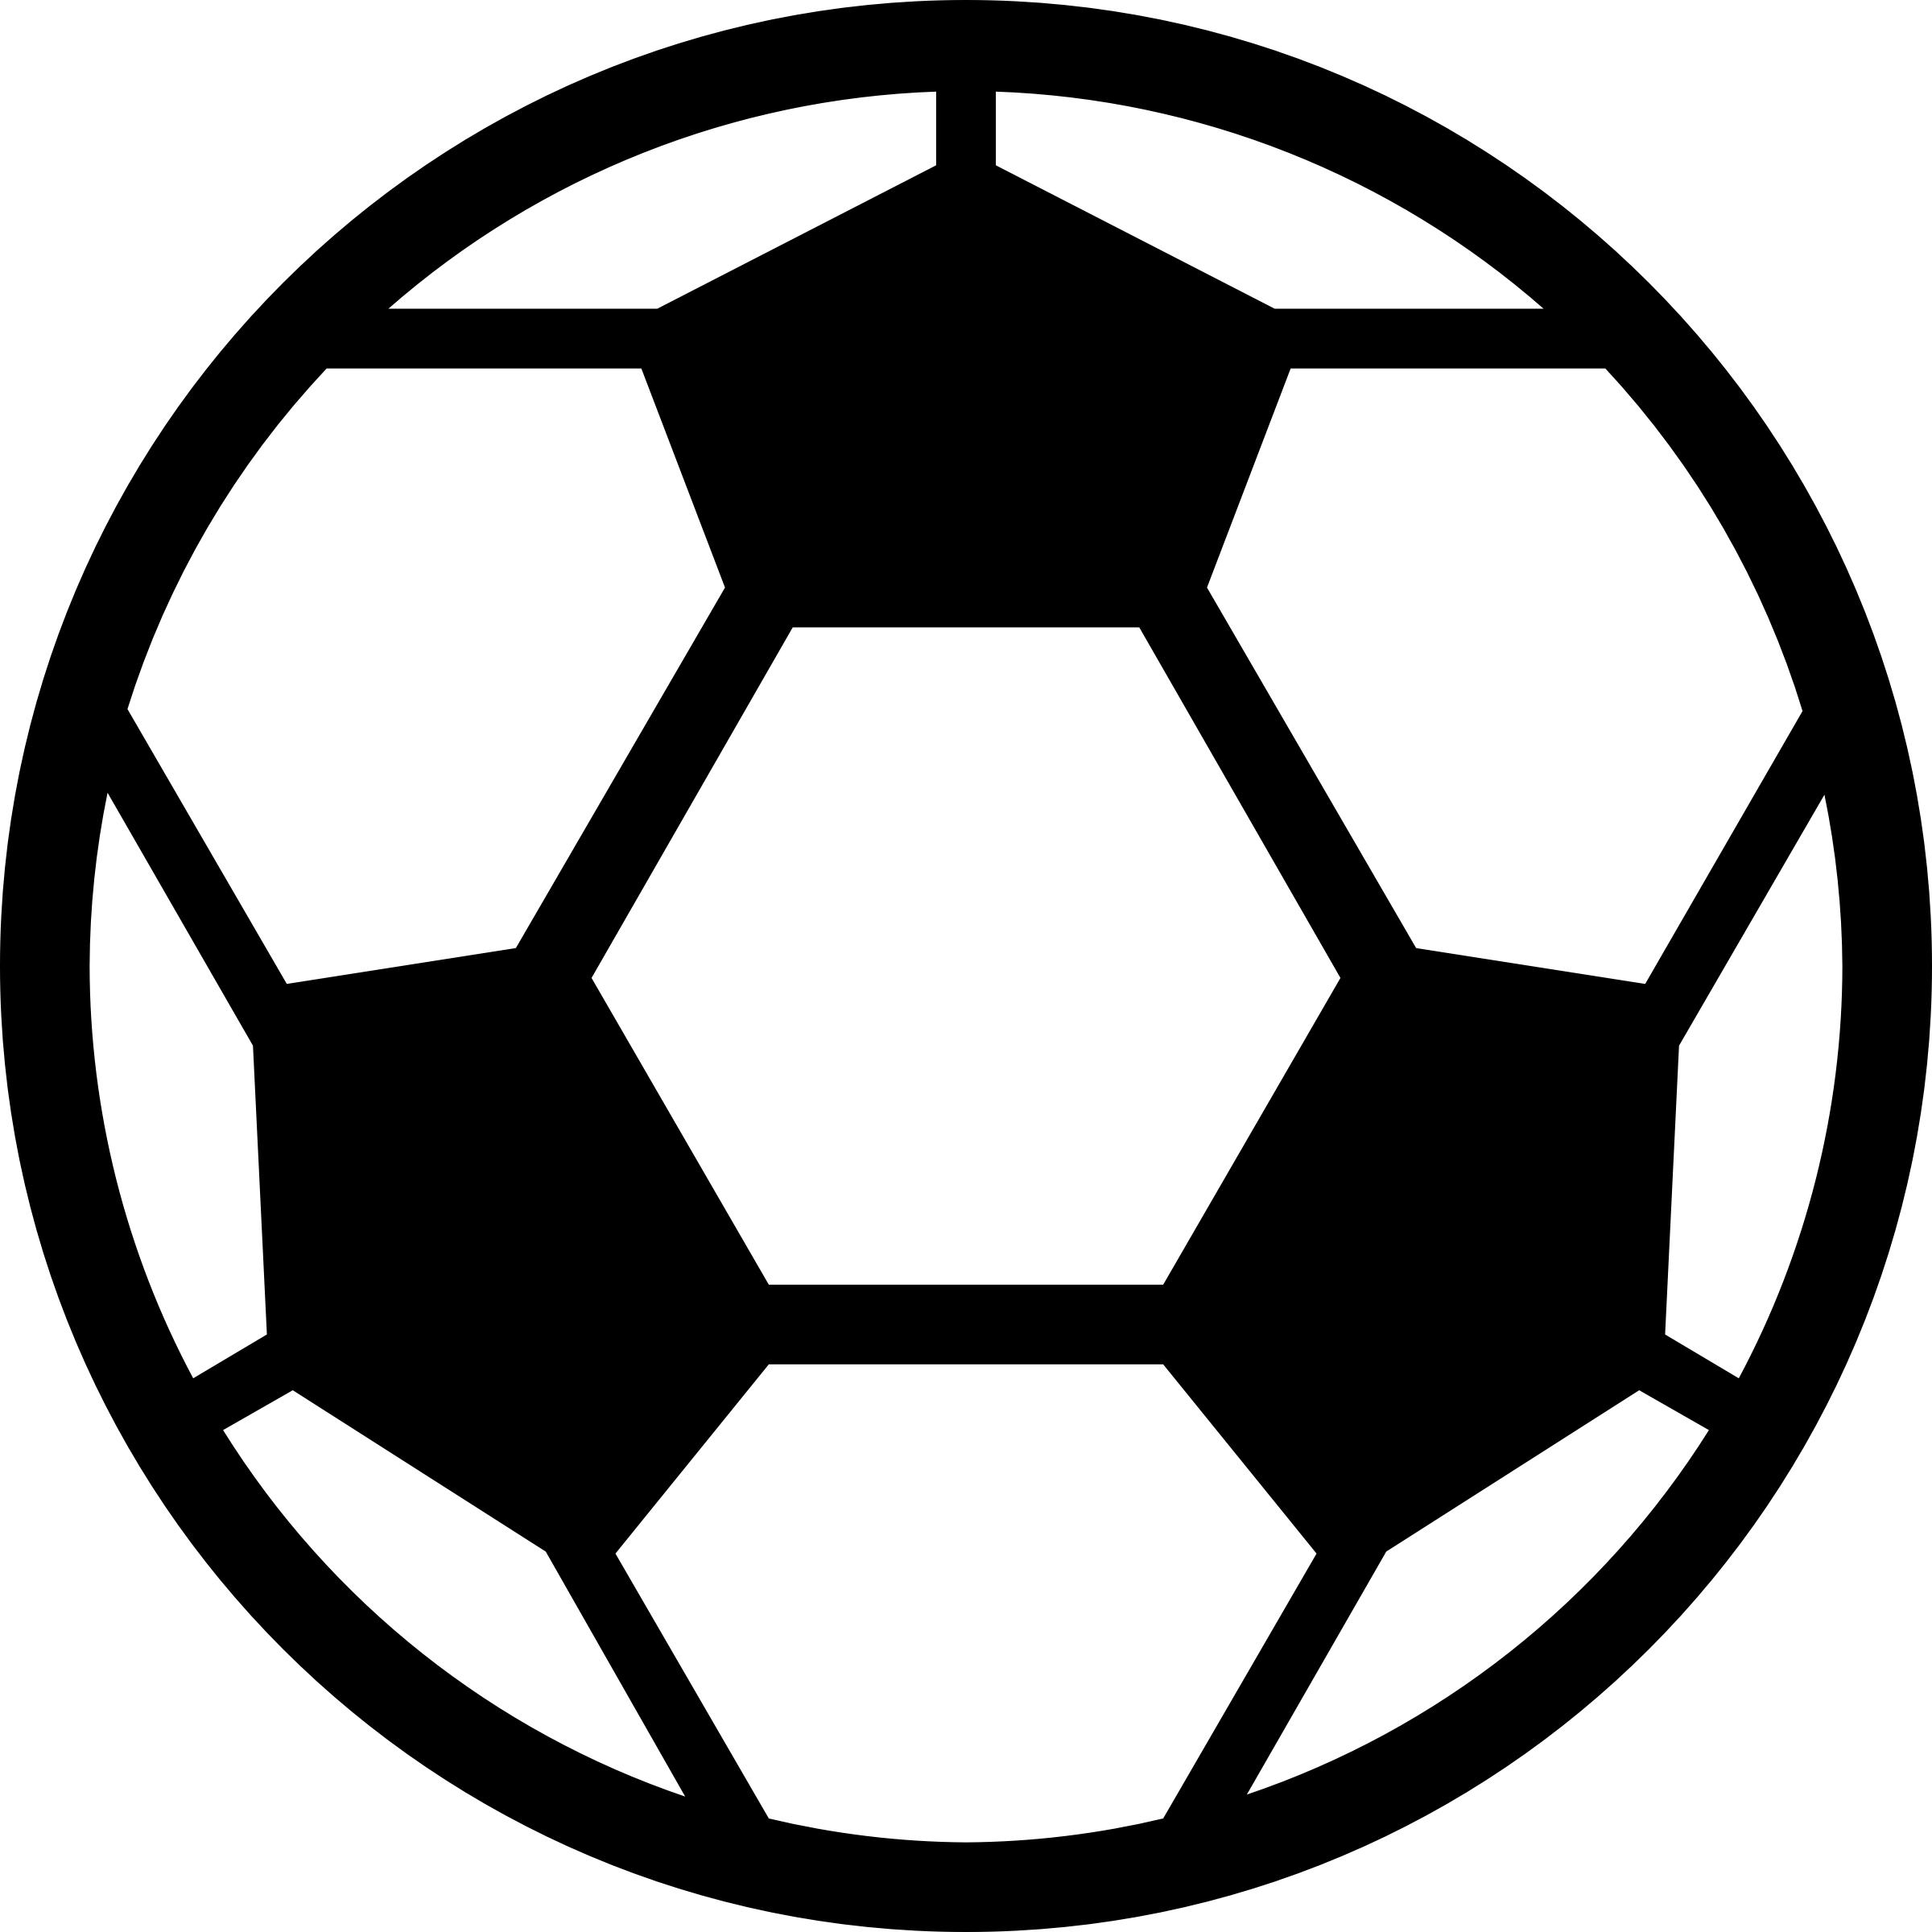 Raffle clipart soccer.  collection of balls